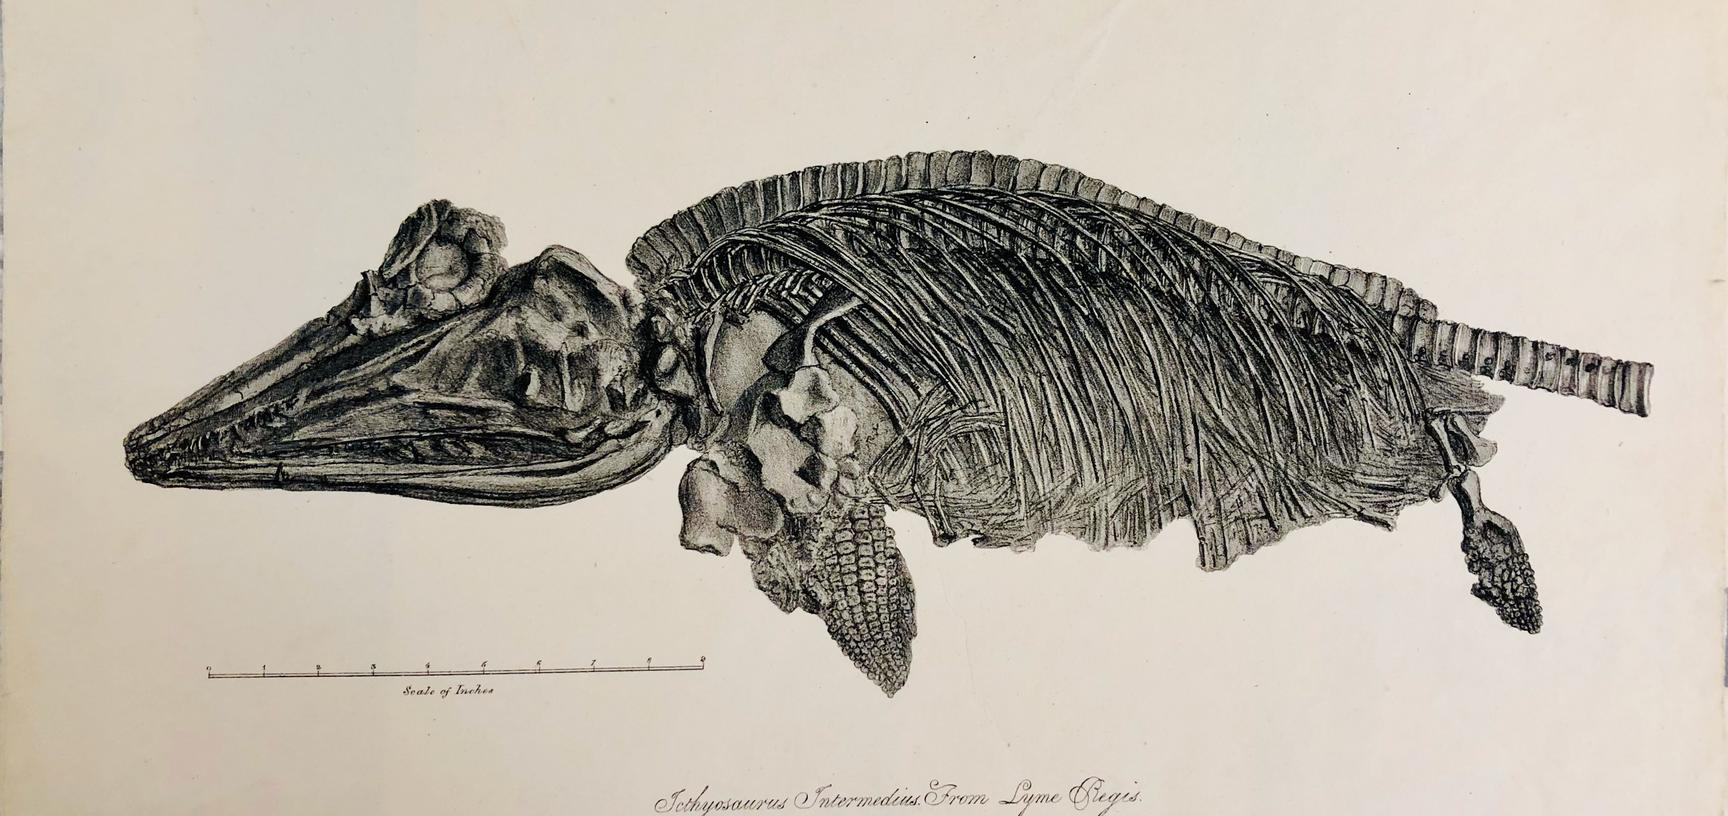 4 ichthyosaurus intermedius from lyme regis lithograph by nathaniel whittock of oxford c 1827 mnh library and archives